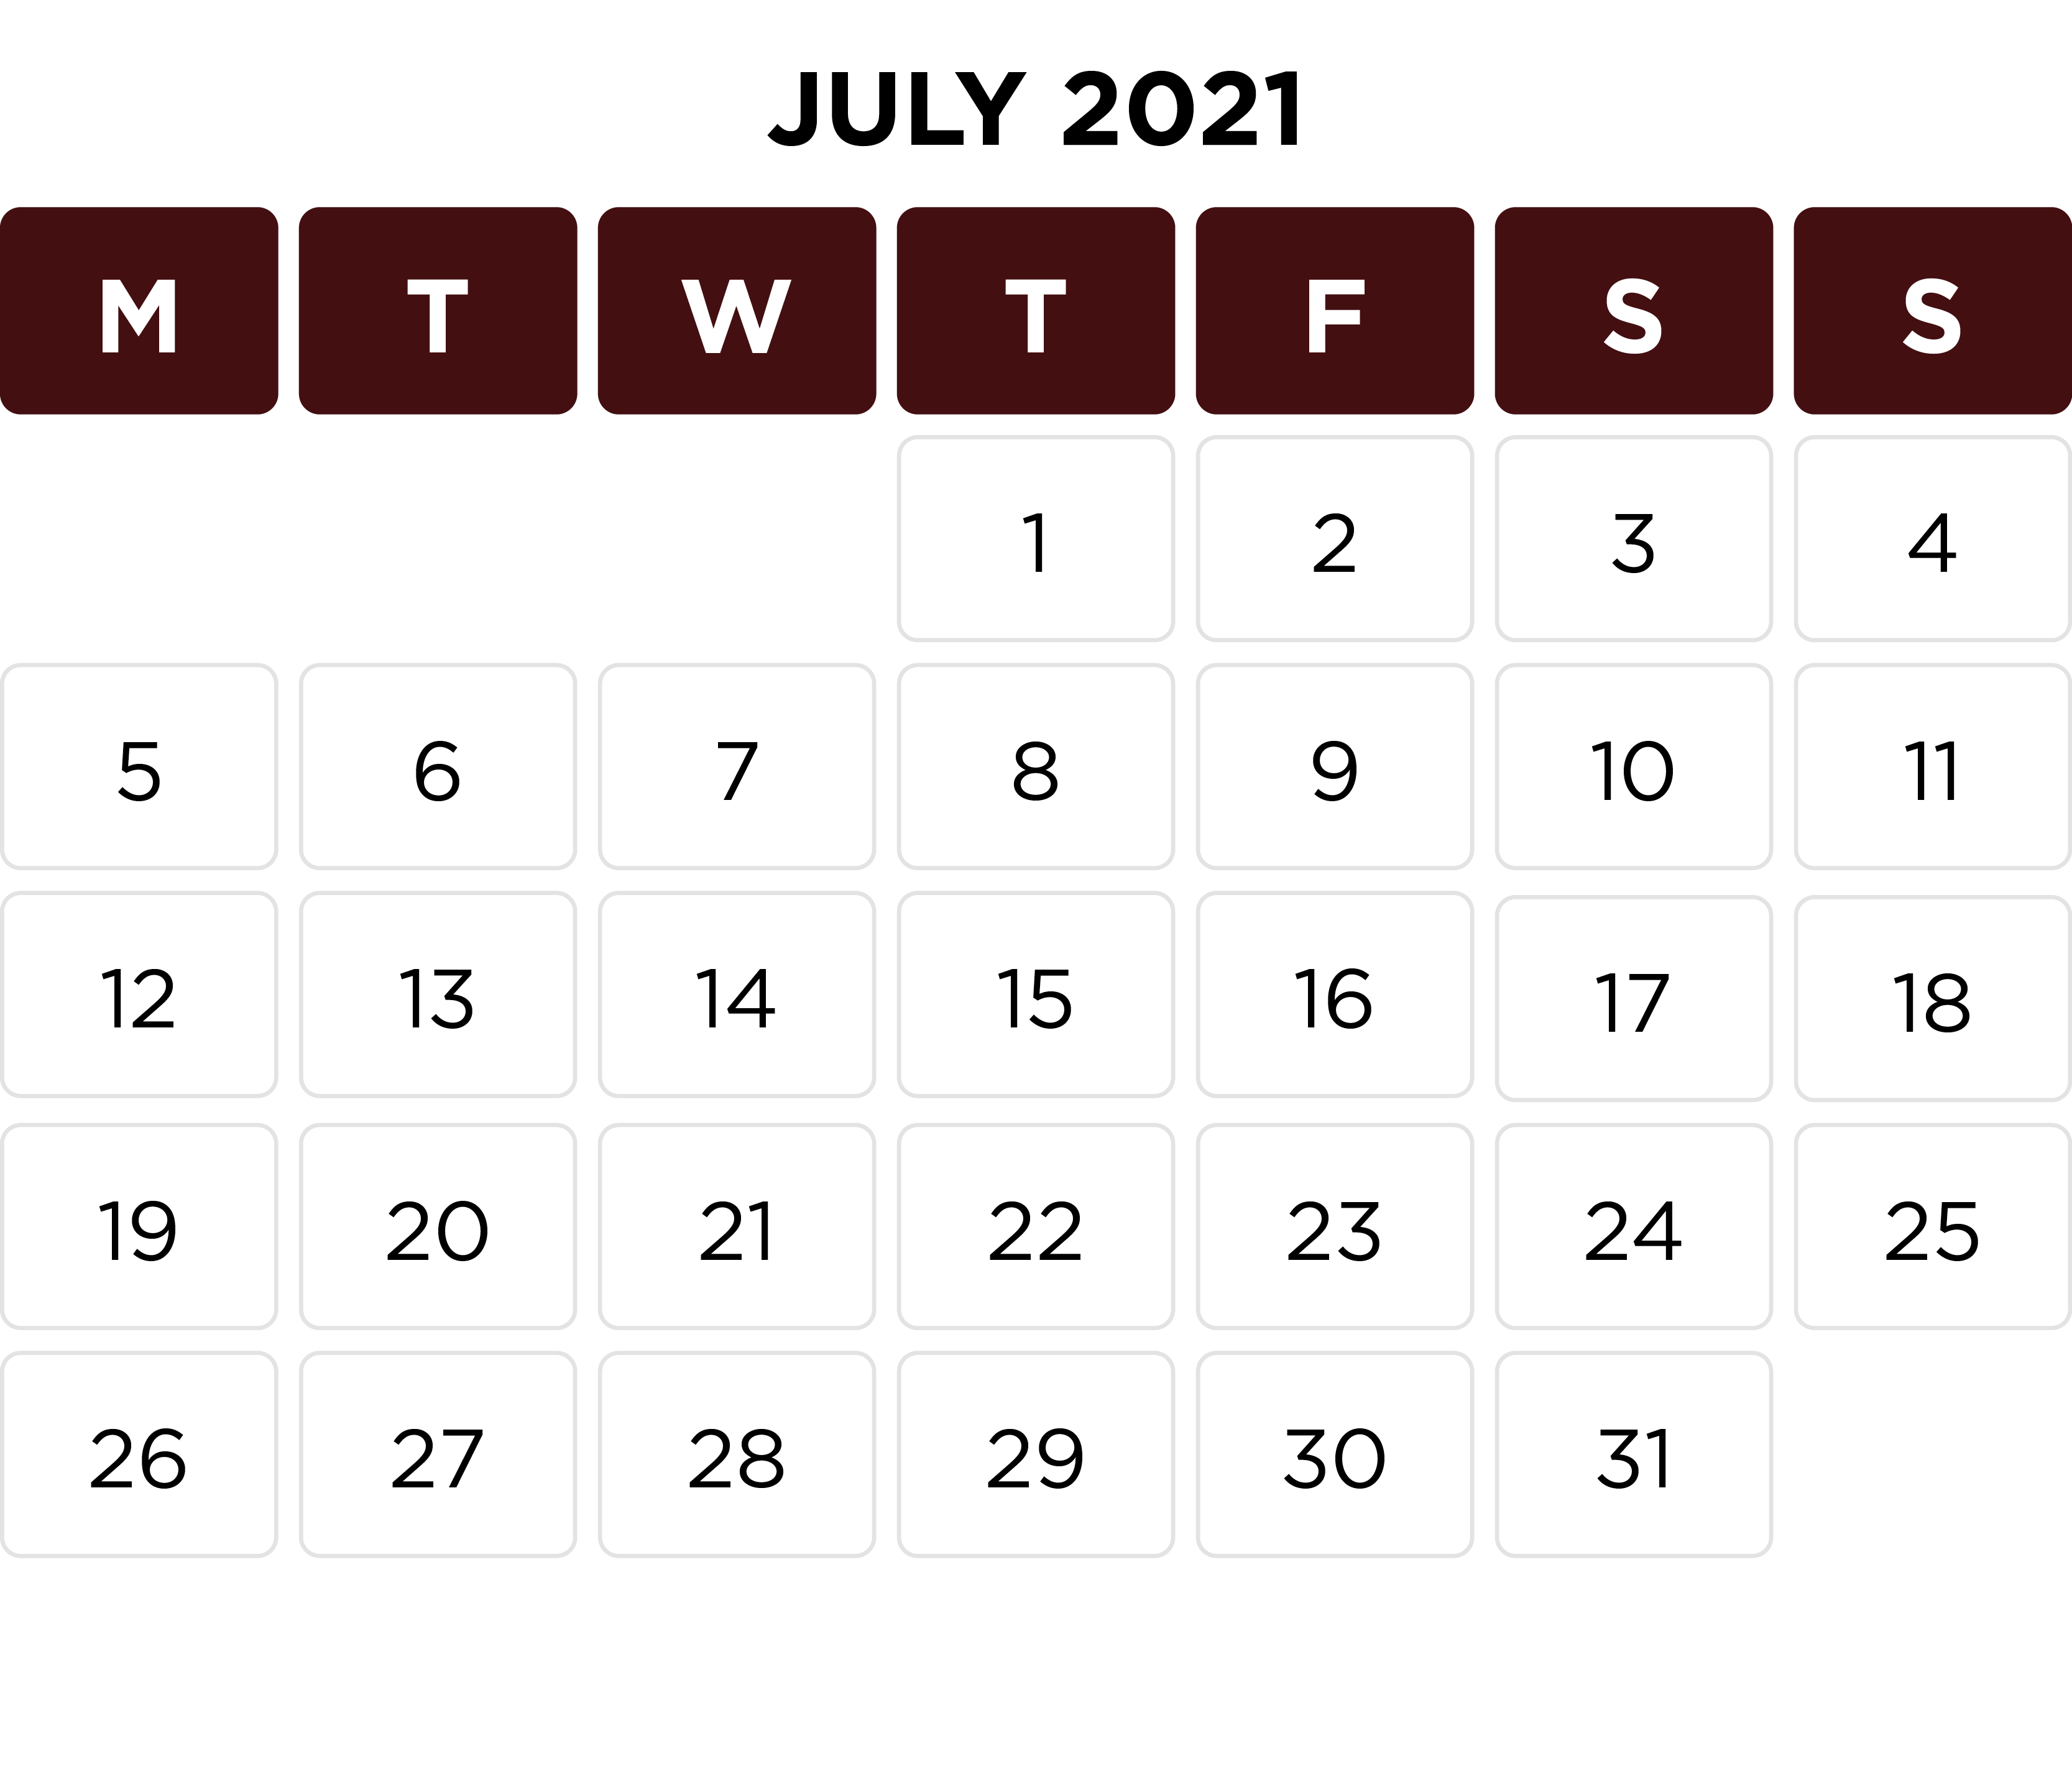 LNER1078 East Coast Upgrade 2020-21 Dates - Web Graphic Month Supply 800x688px - 09 July 2021.png